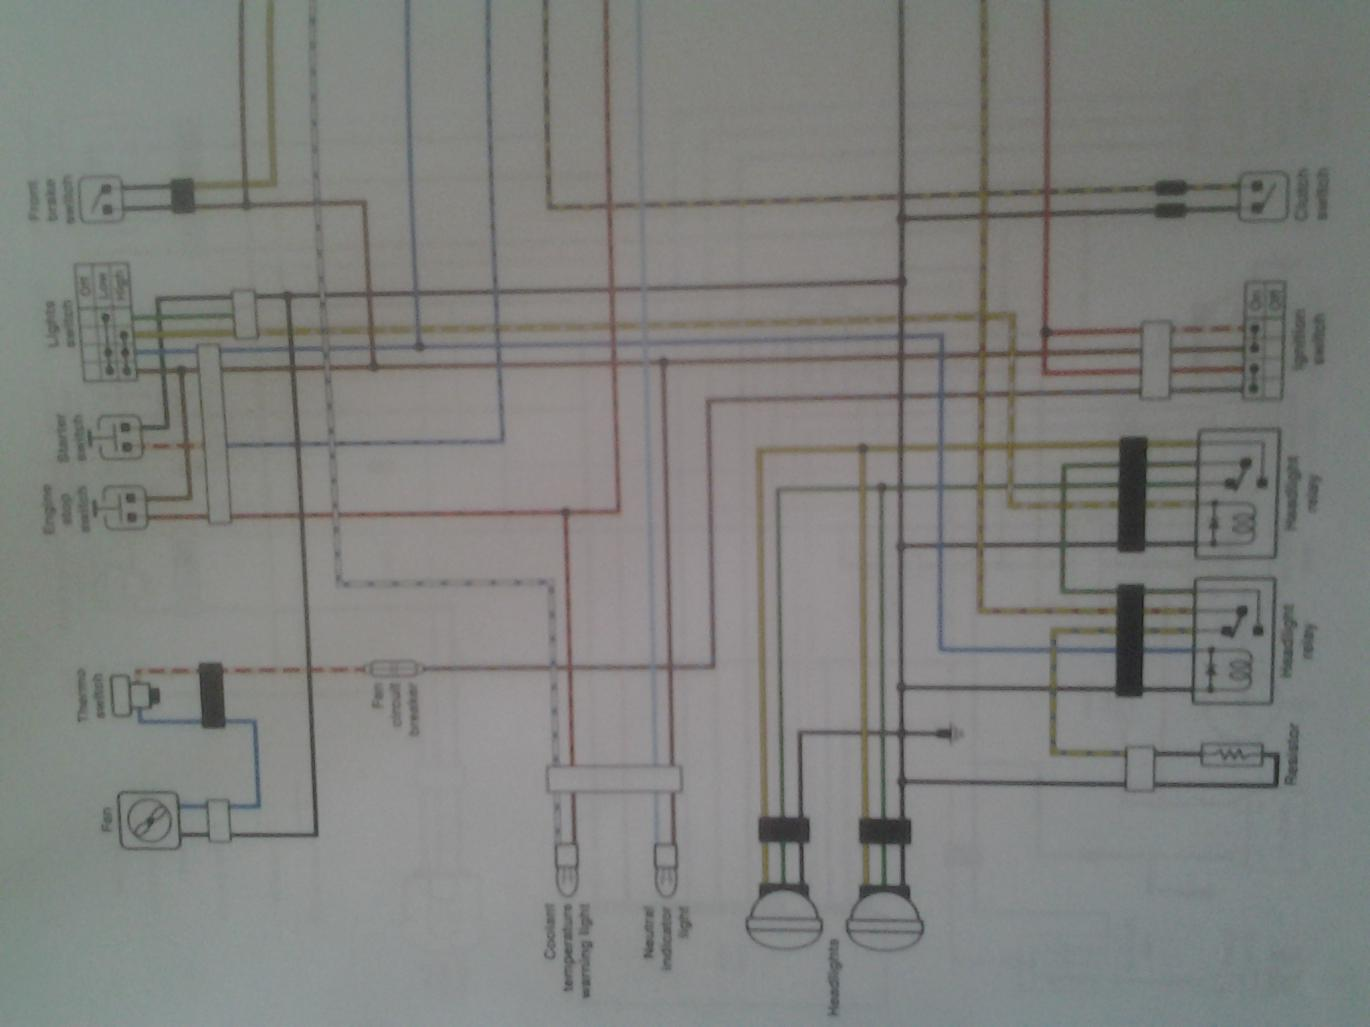 Wiring Diagrams Along With Trail Tech Vapor Wiring Diagram Wiring